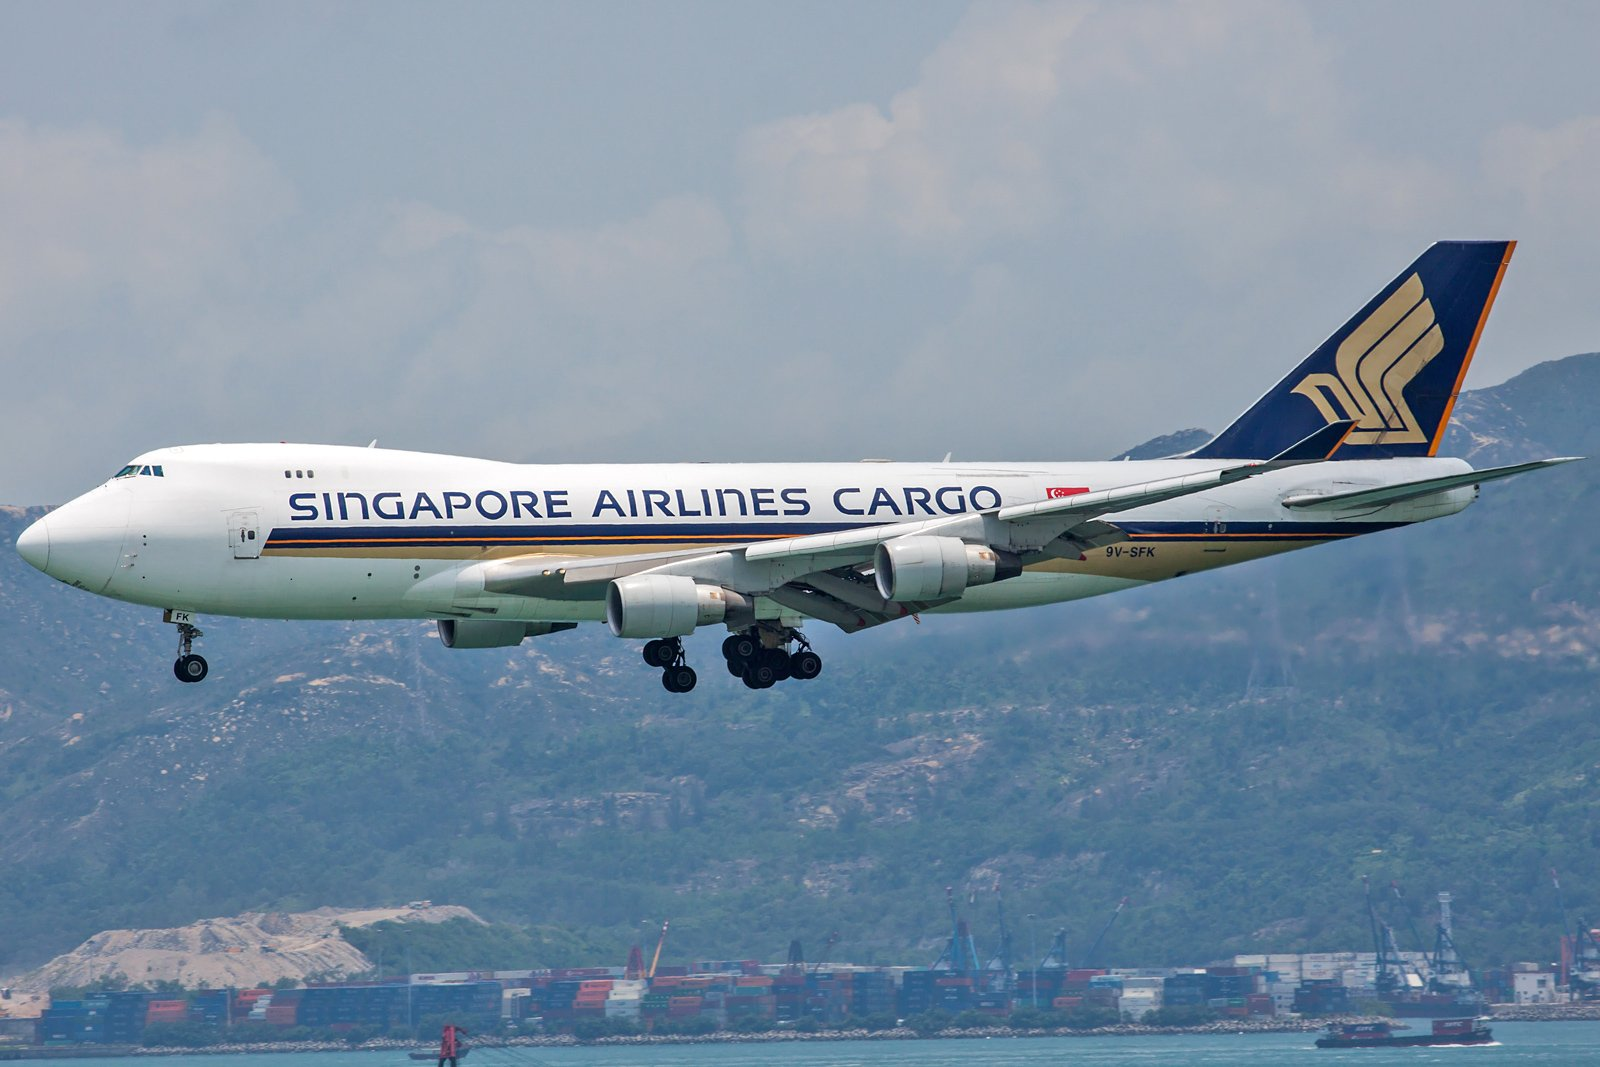 Singapore Airlines Cargo Boeing 747-412F 9V-SFK